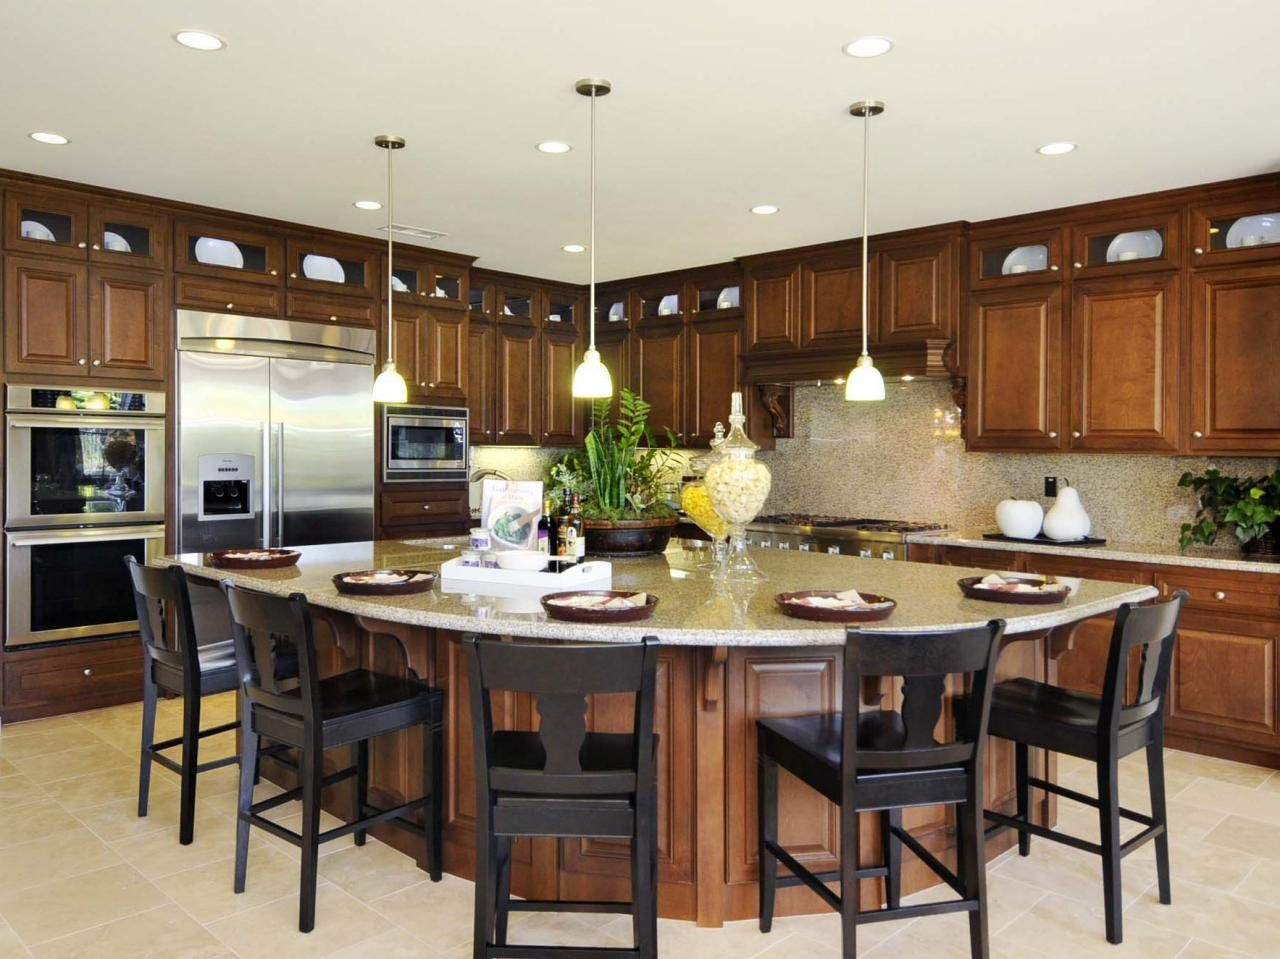 Kitchen Island Design Ideas Pictures Options Tips Kitchen Layout Kitchen Island Design Kitchen Island With Seating